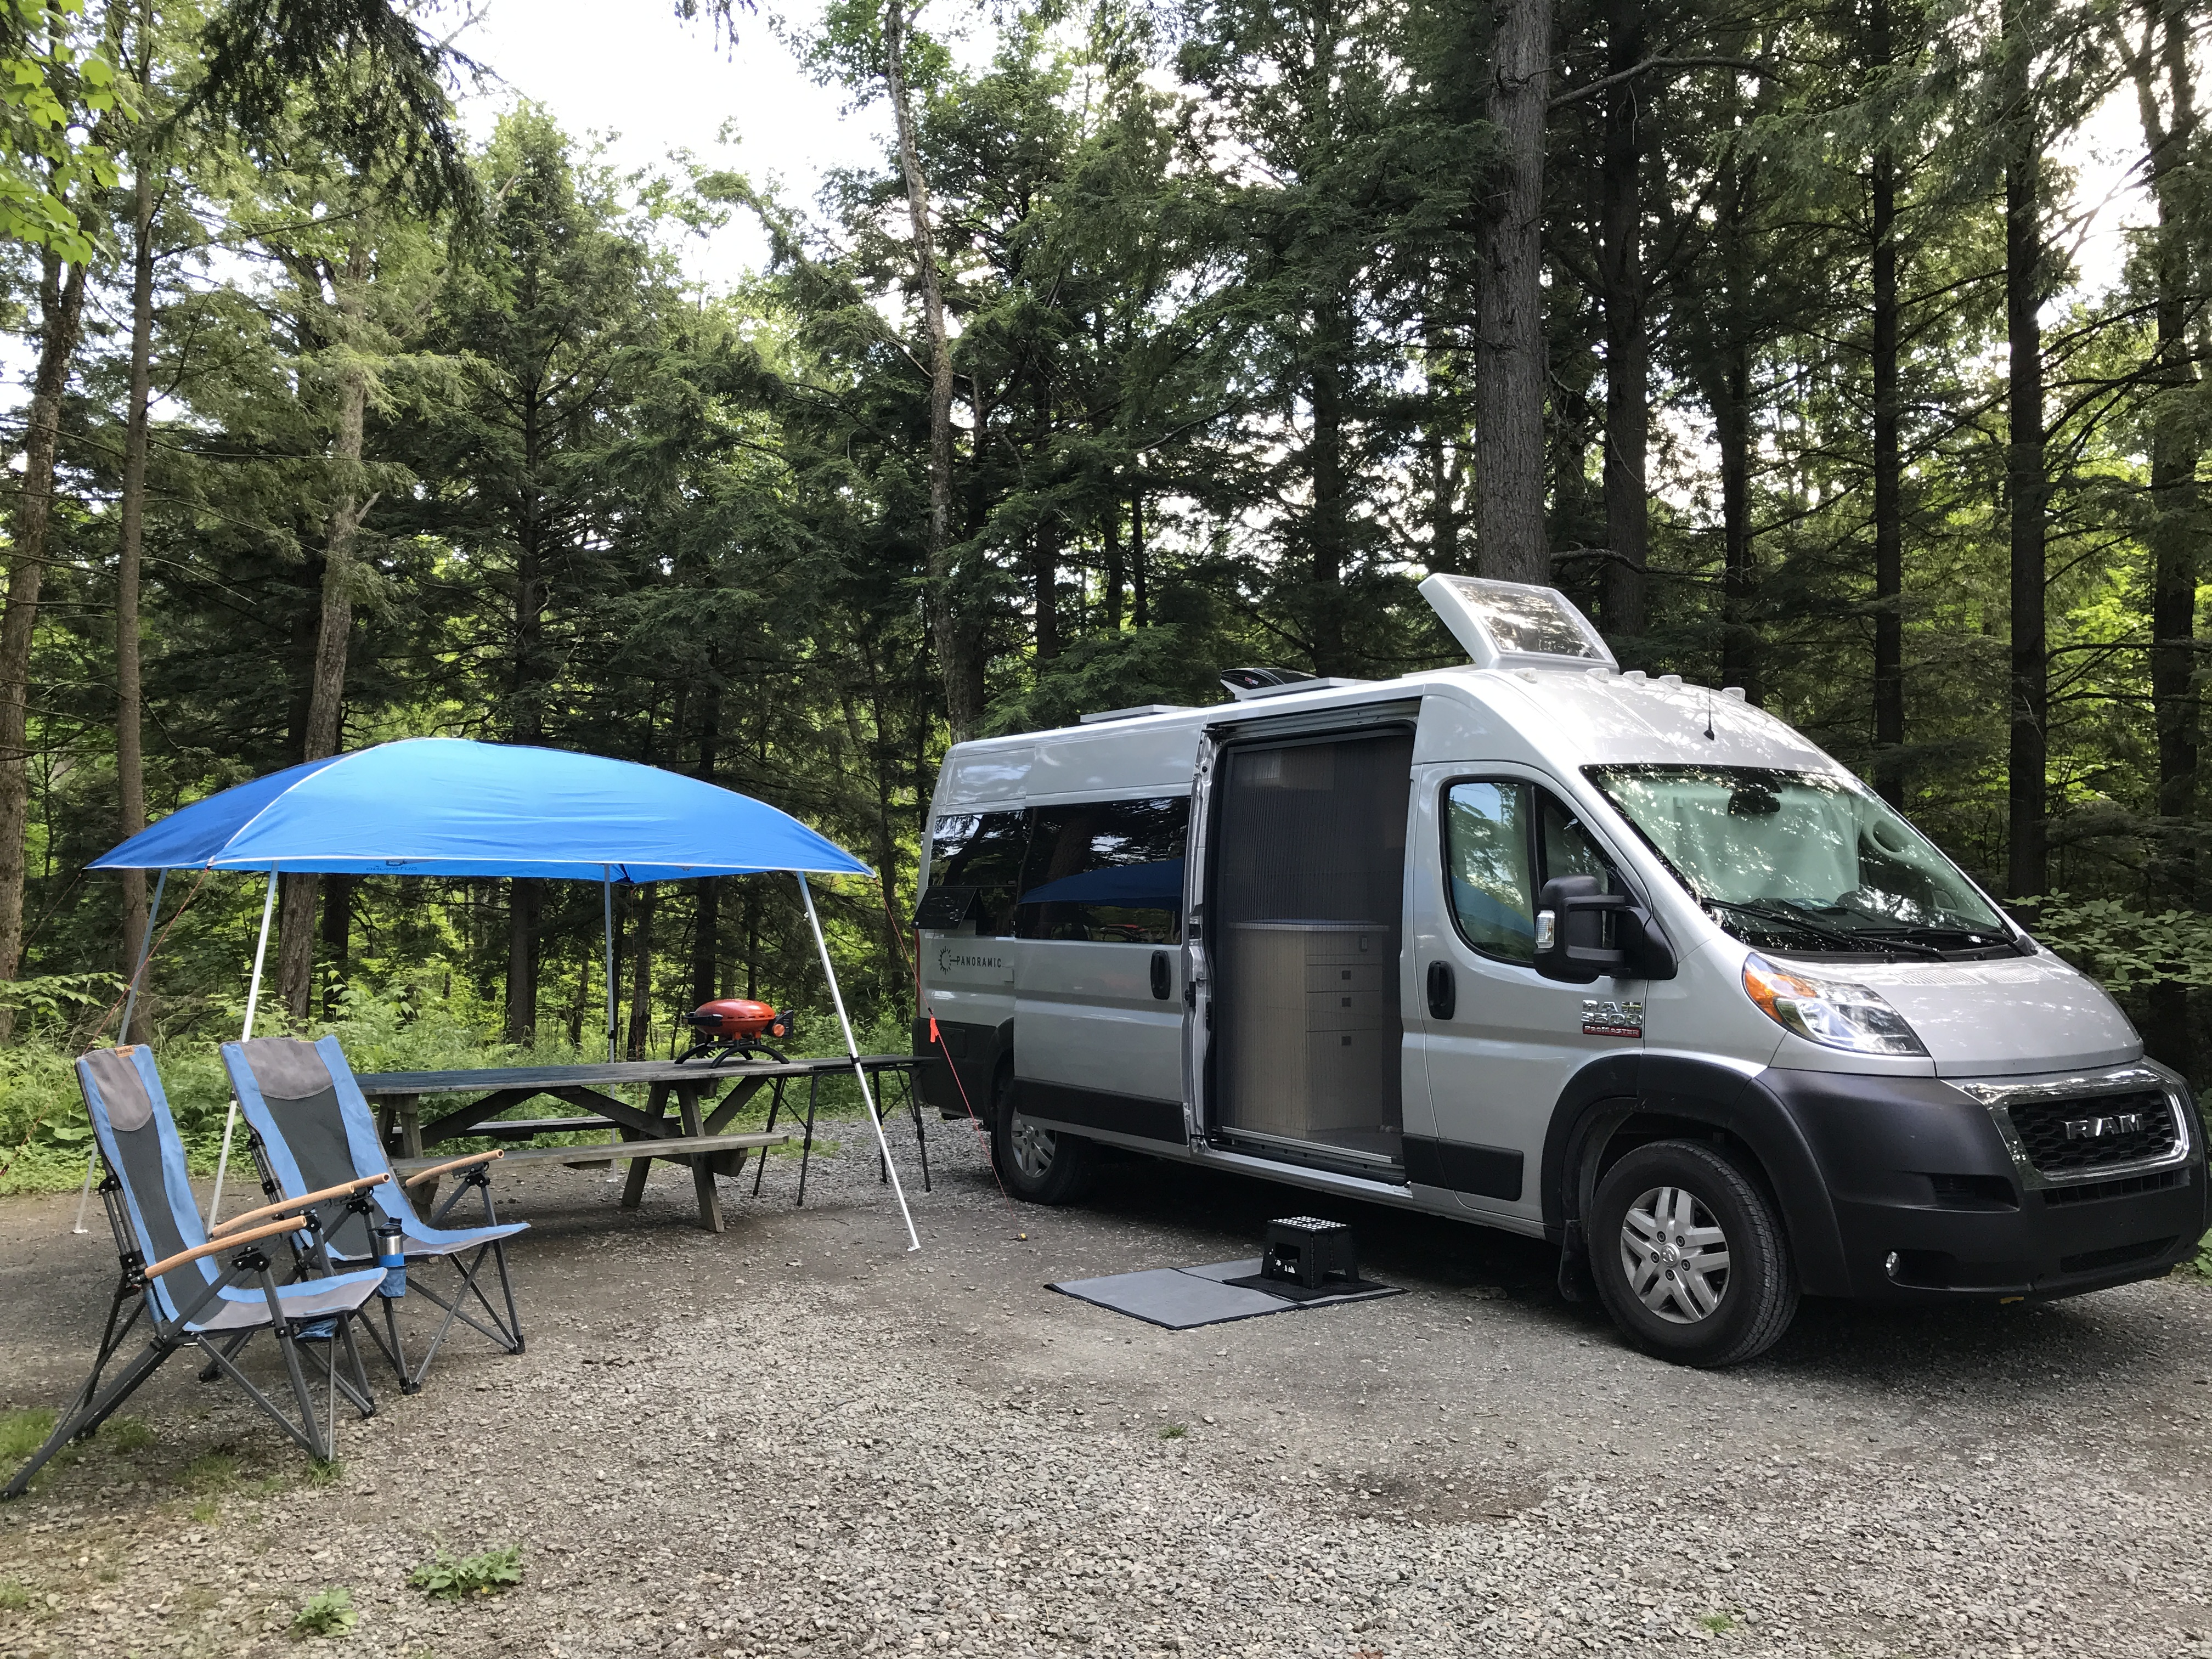 Panoramic RV - Owners - JV - 8